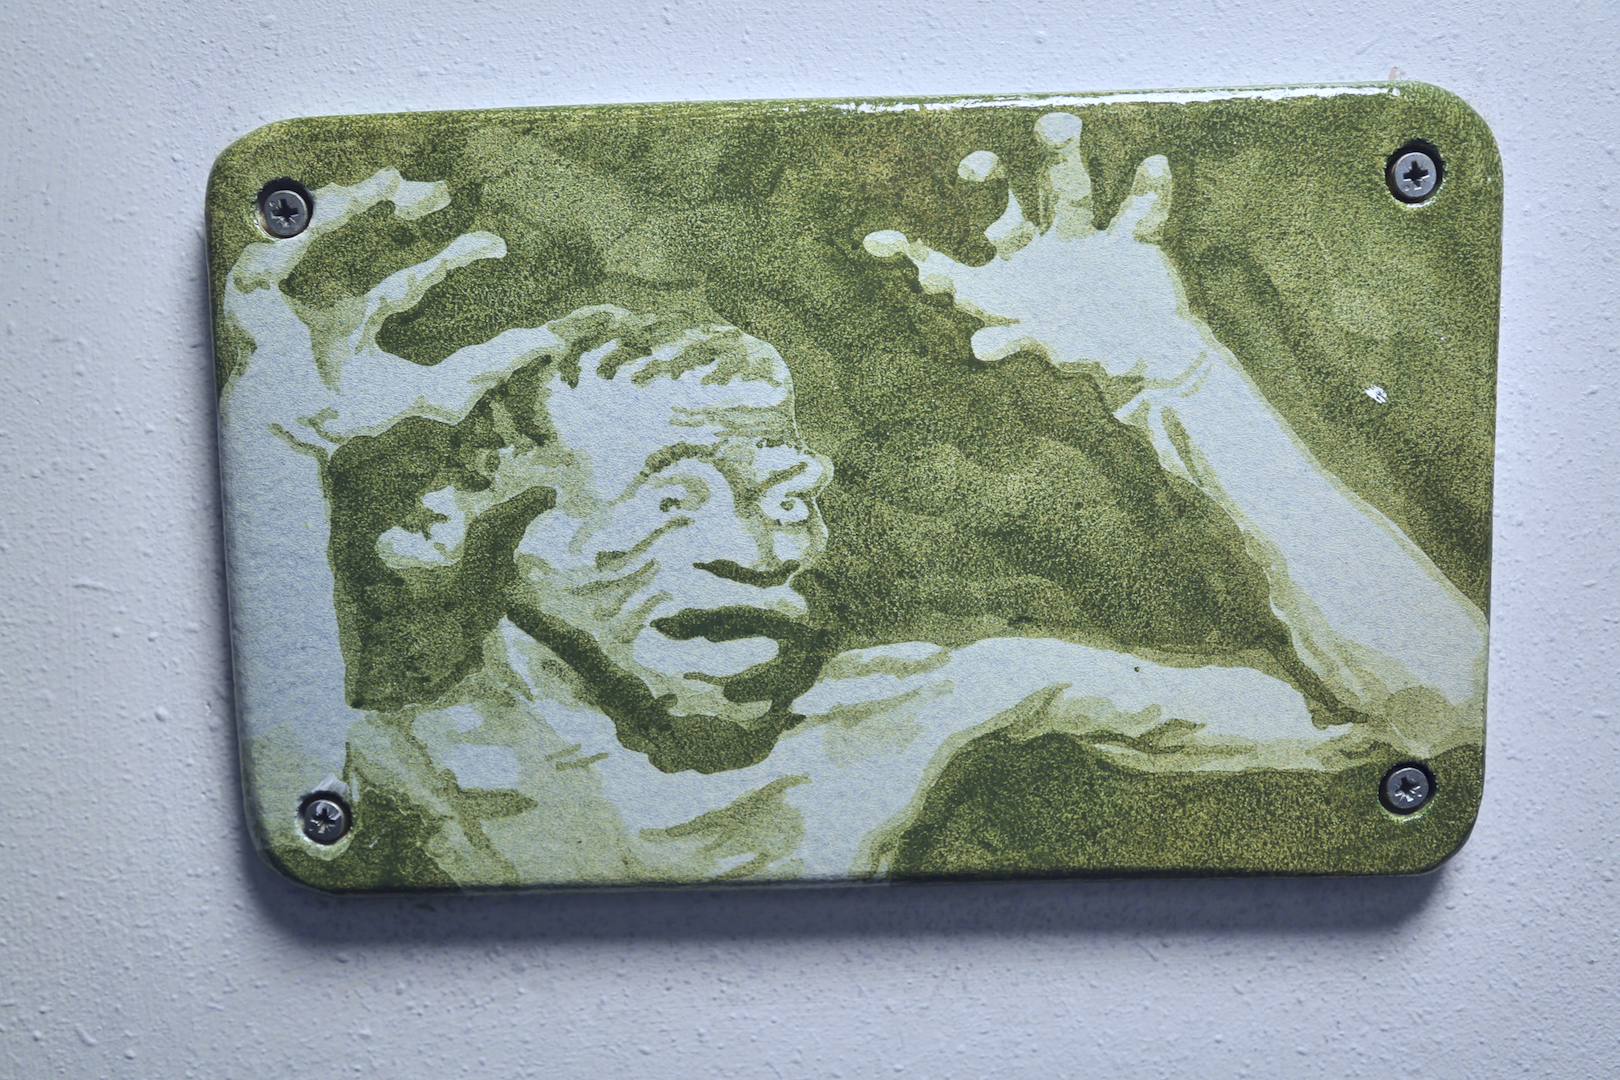 Plaque, screaming figure